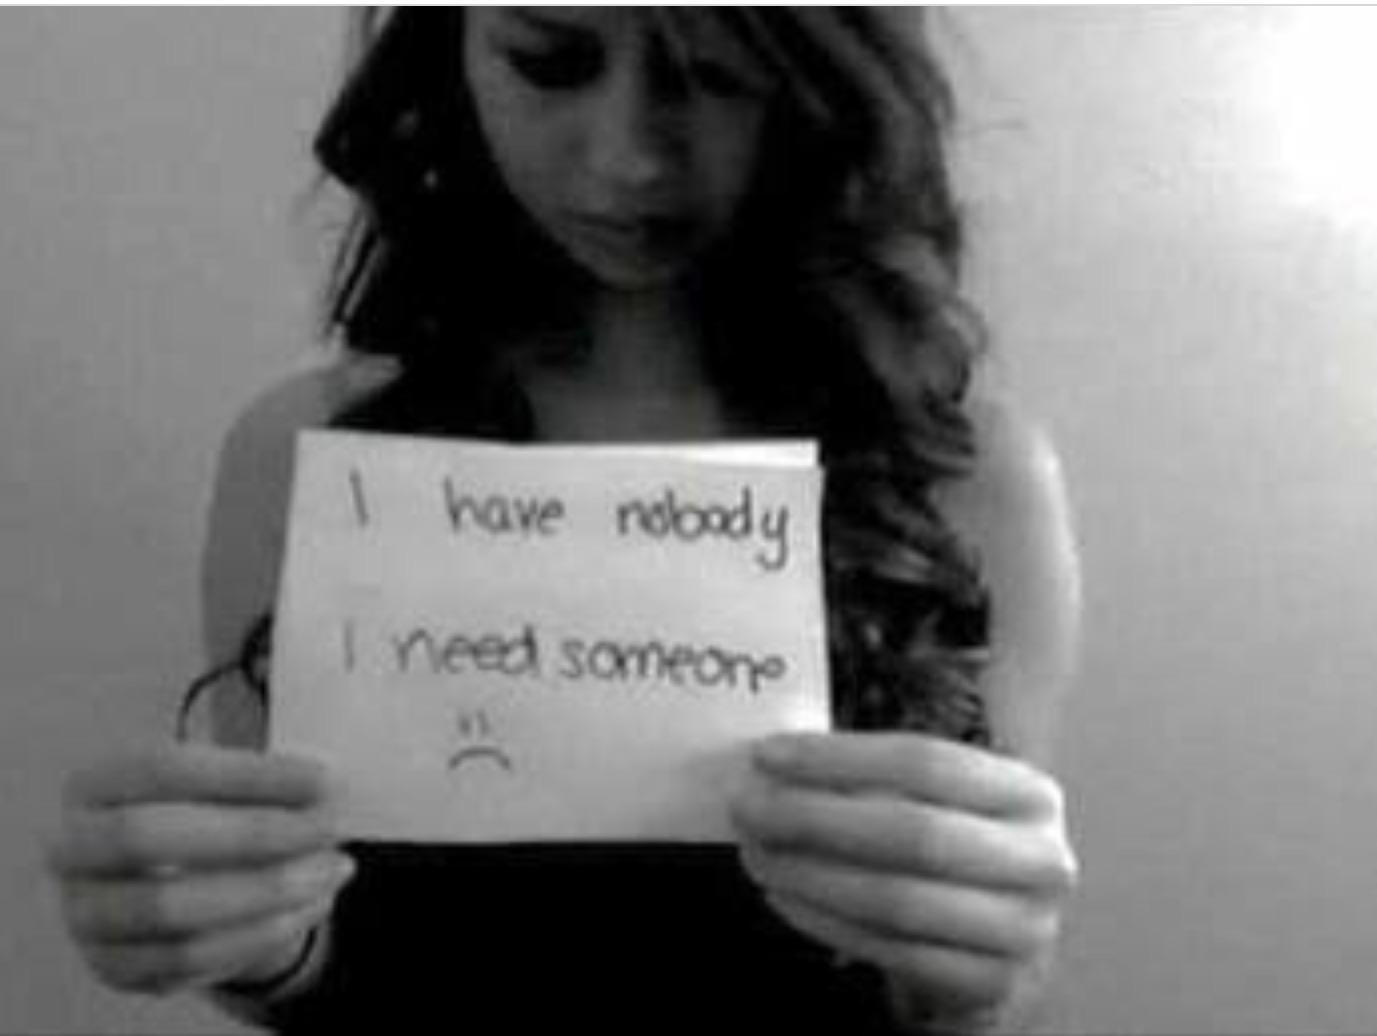 Have you herd about Amanda Todd?